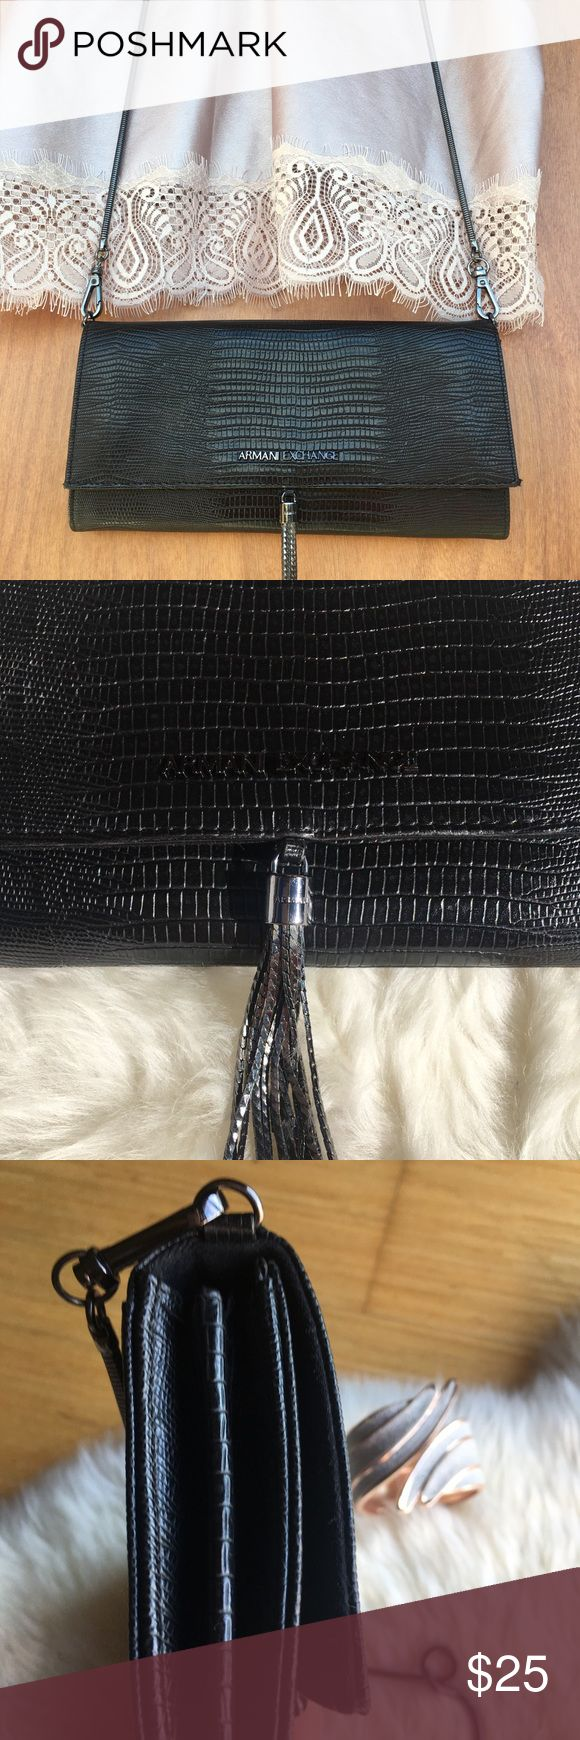 Armani exchange vegan croc crossbody In excellent condition!  💙Black vegan croc leather  💙 heavy metal tassel  💙 matching chain detachable  💙 cross body design  💙 valet pockets inside  PS: top is also available for sale! A/X Armani Exchange Bags Clutches & Wristlets